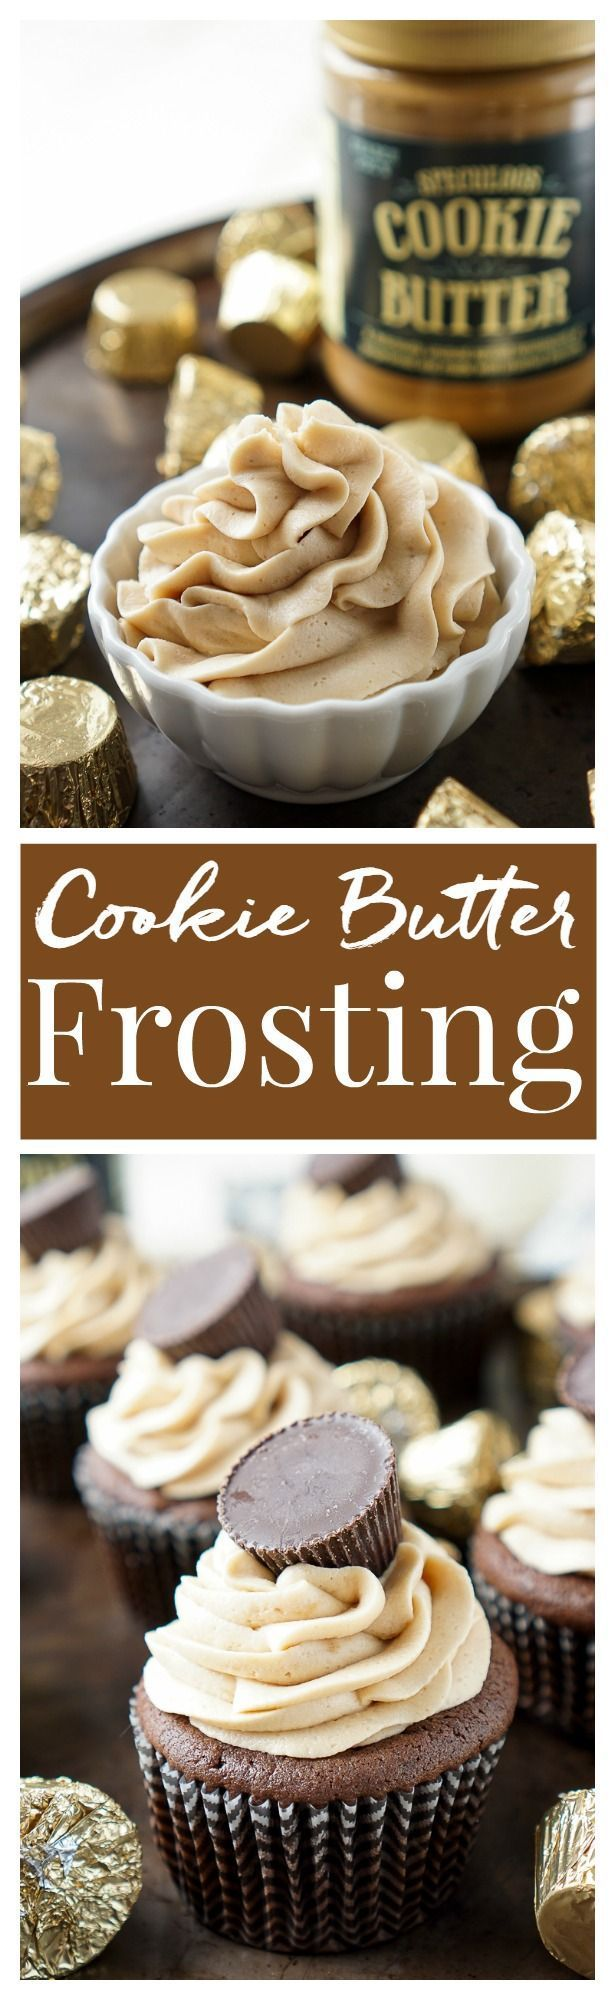 Cookie Butter Frosting